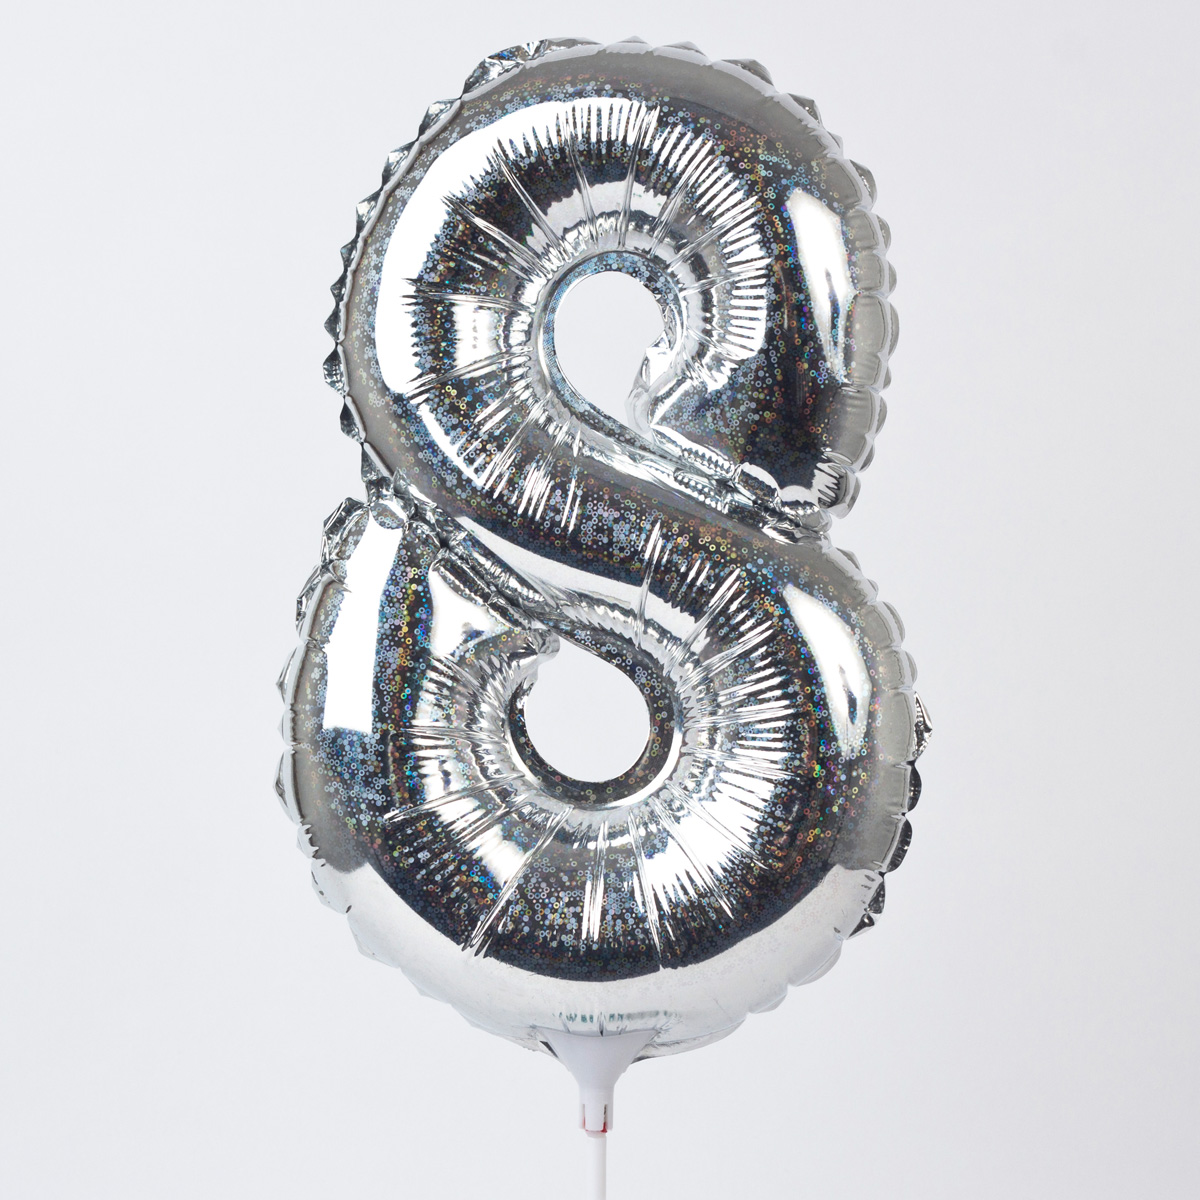 Holographic Silver Number 8 Balloon On A Stick